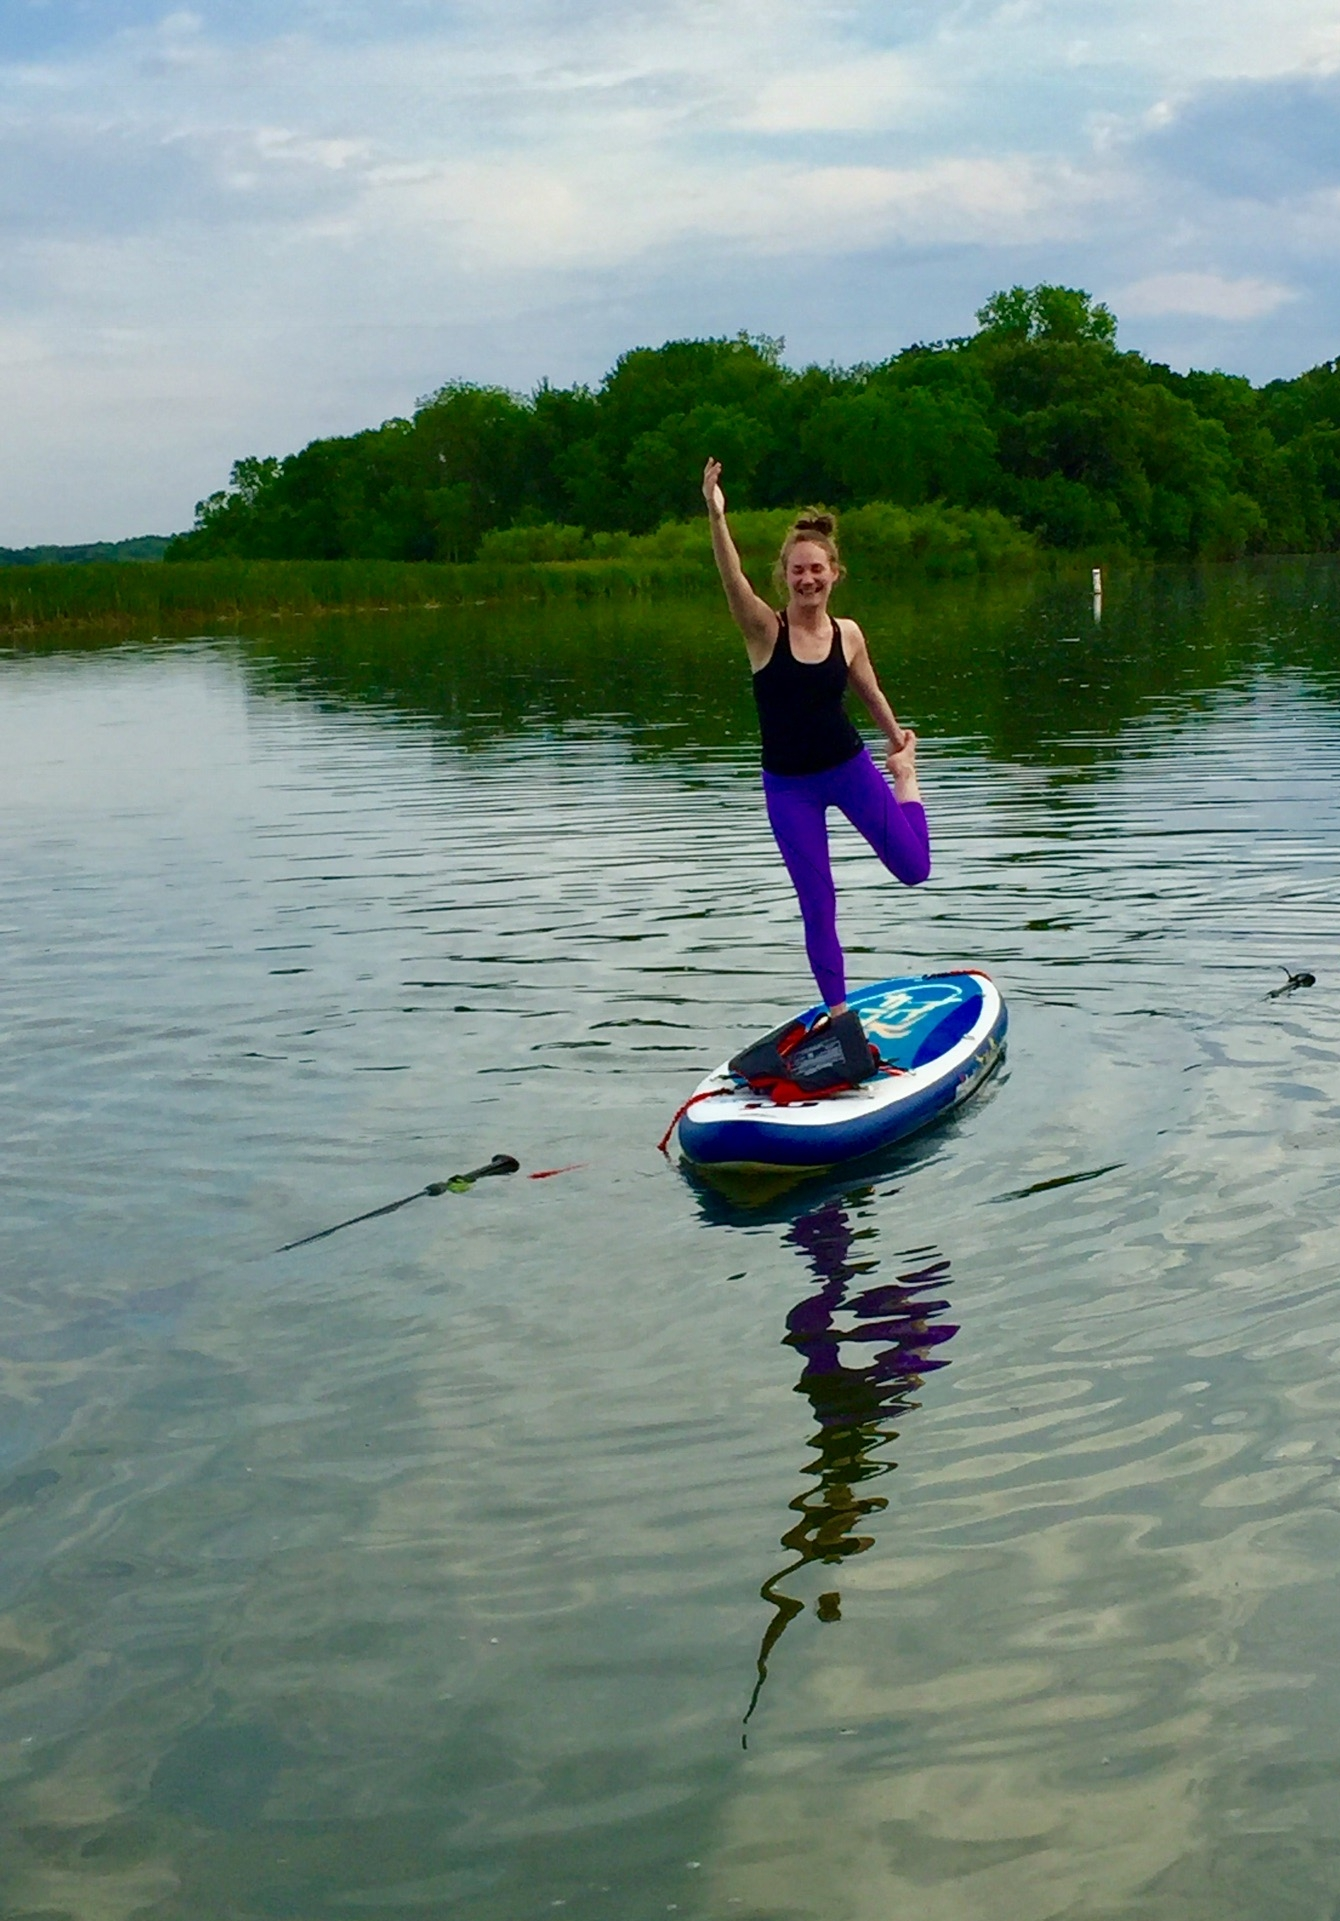 A photo of a woman doing dancer pose while standing on a paddleboard on the water.